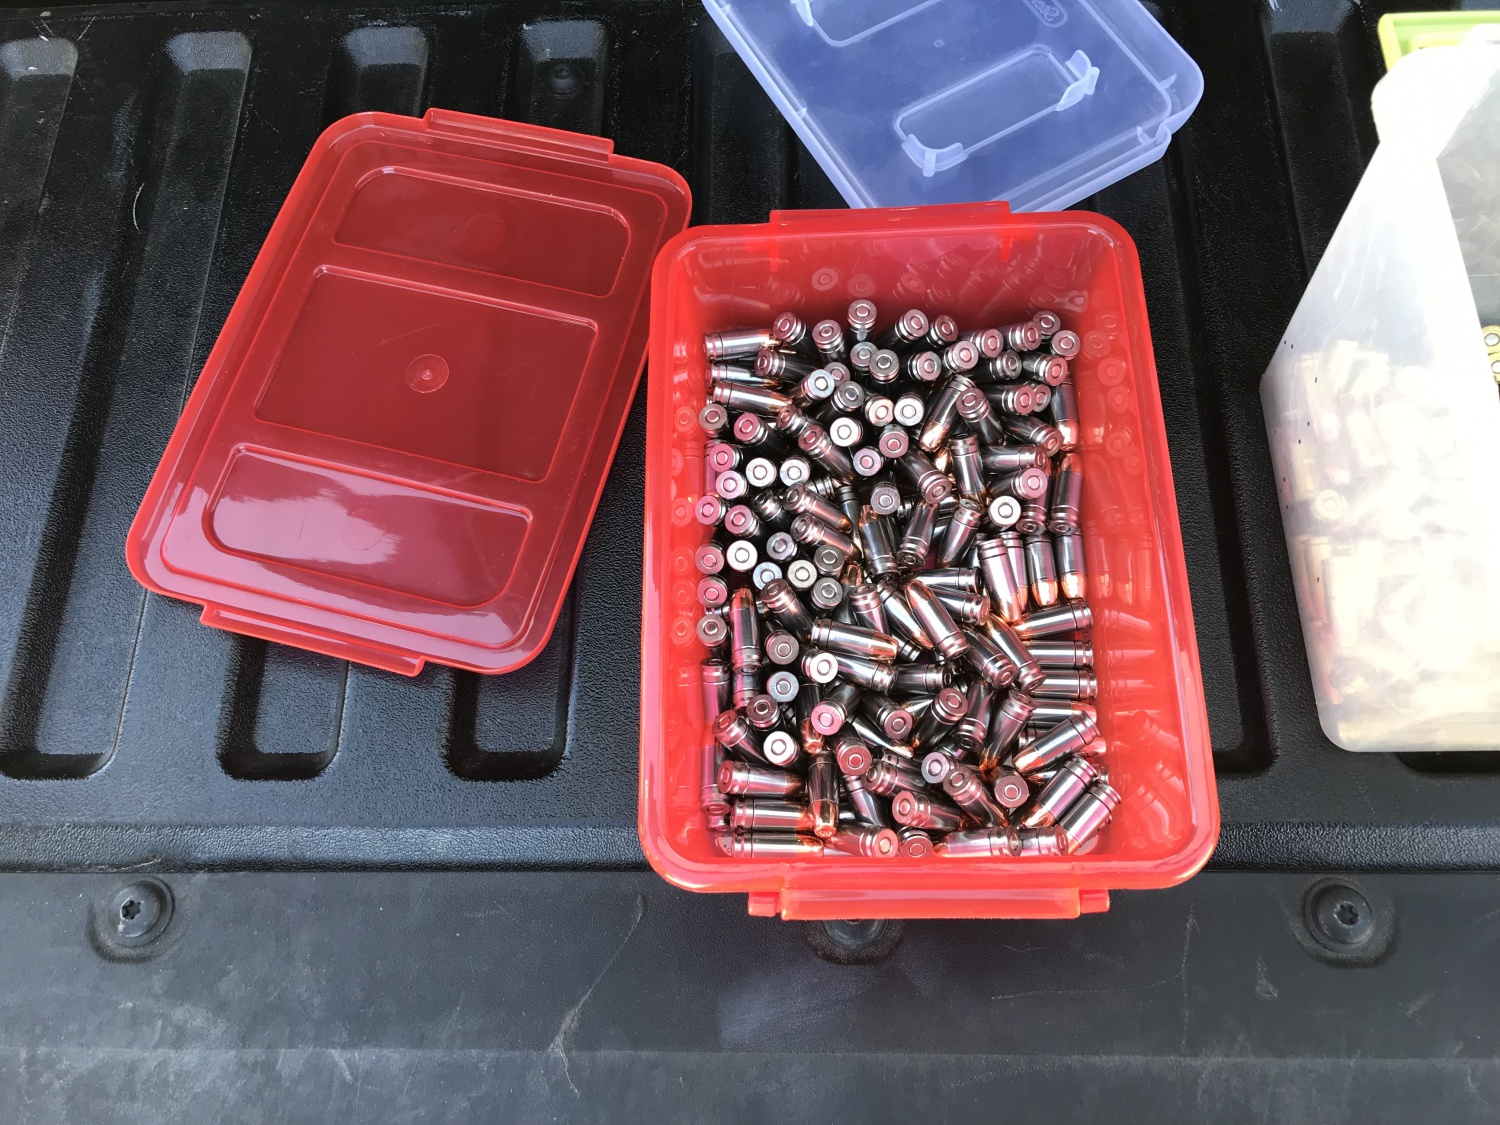 One of many containers of rounds this author loaded using the S3 Reload for testing.